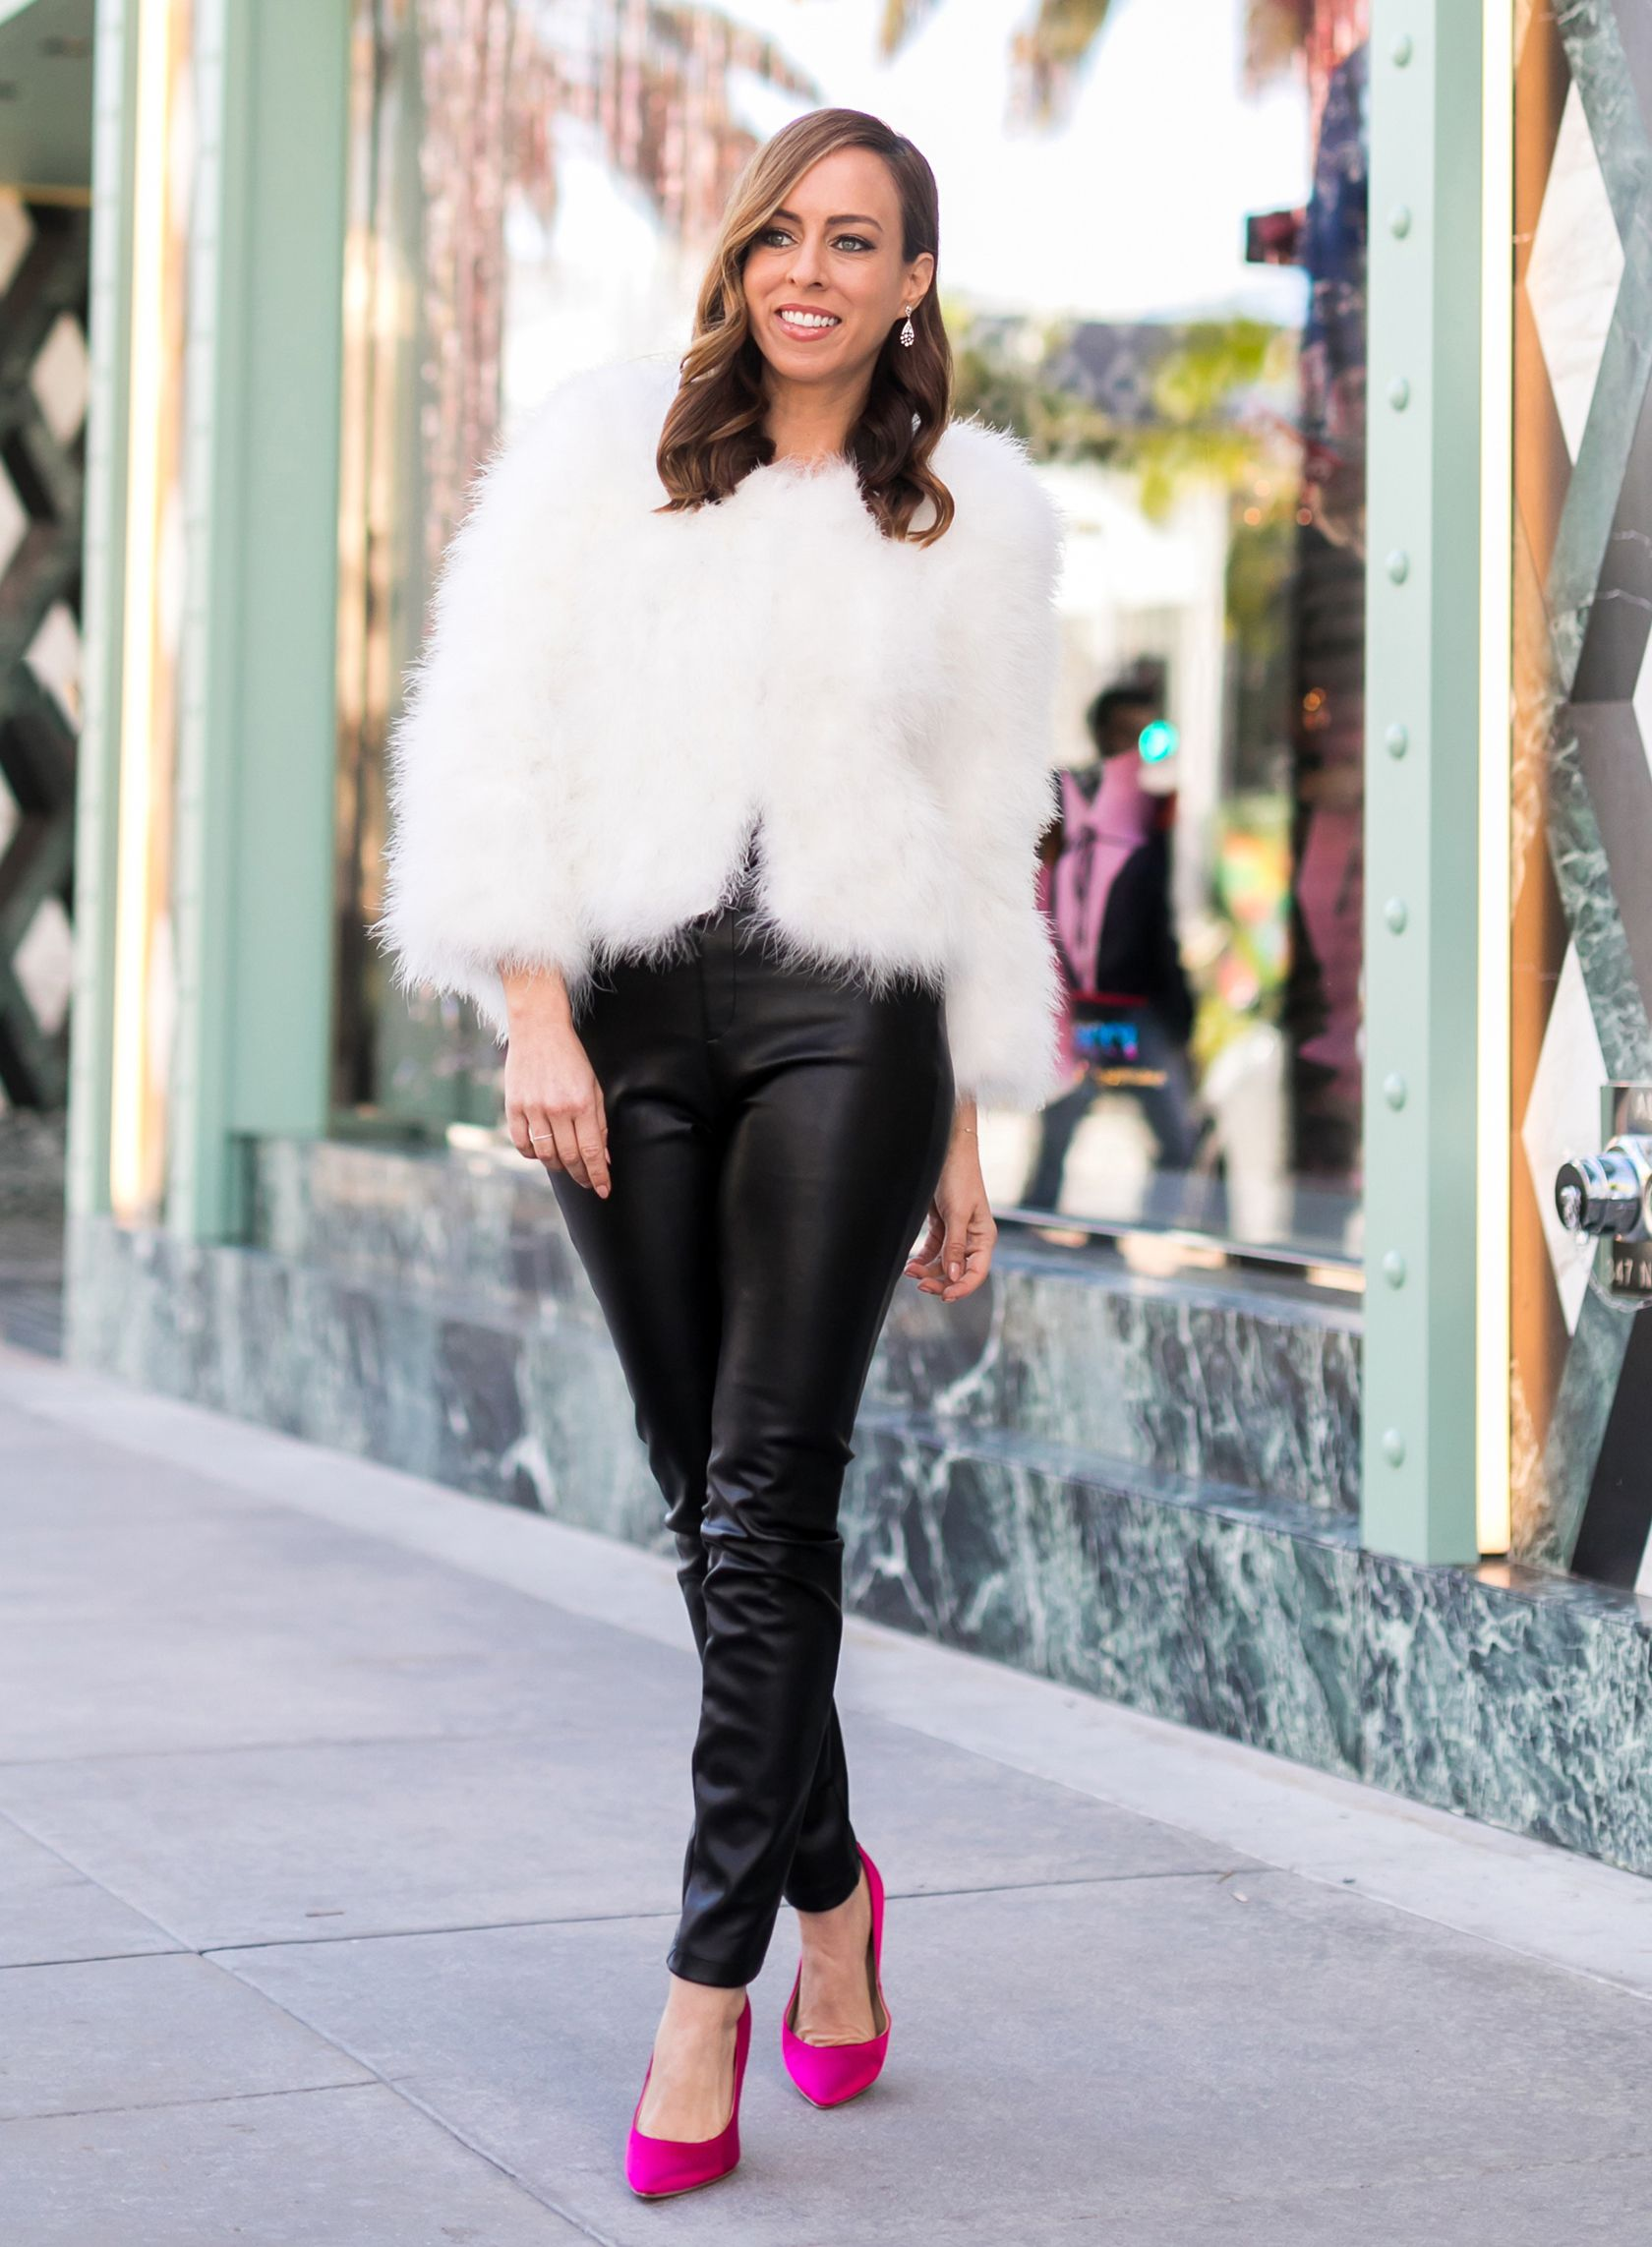 612e6a7e4 Sydne Style shows how to wear the feather trend for holiday parties in  white fuzzy coat and leather leggings  fur  leather  leatherleggings   holiday   ...